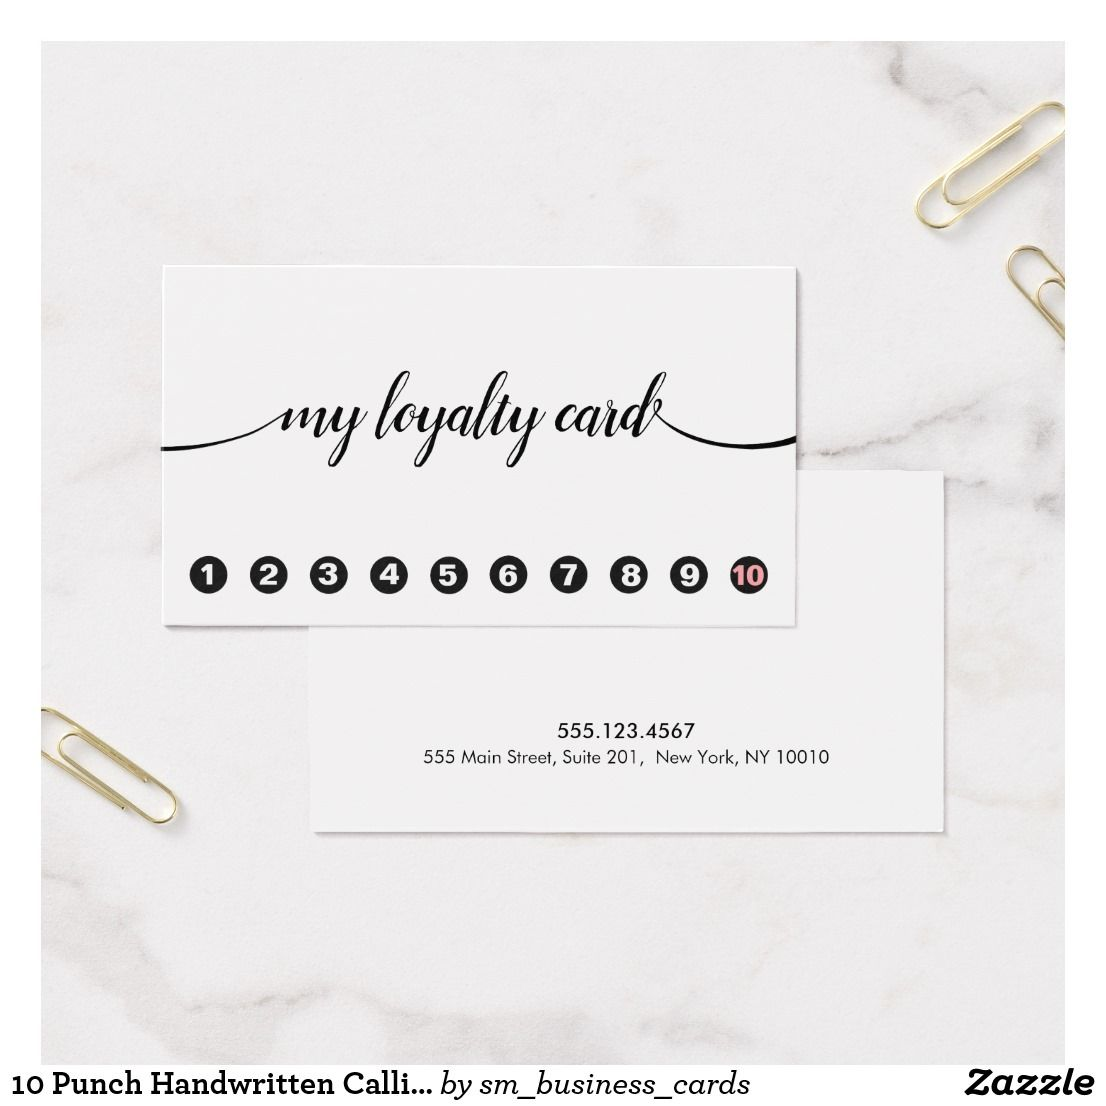 10 Punch Handwritten Calligraphy Loyalty | Business cards